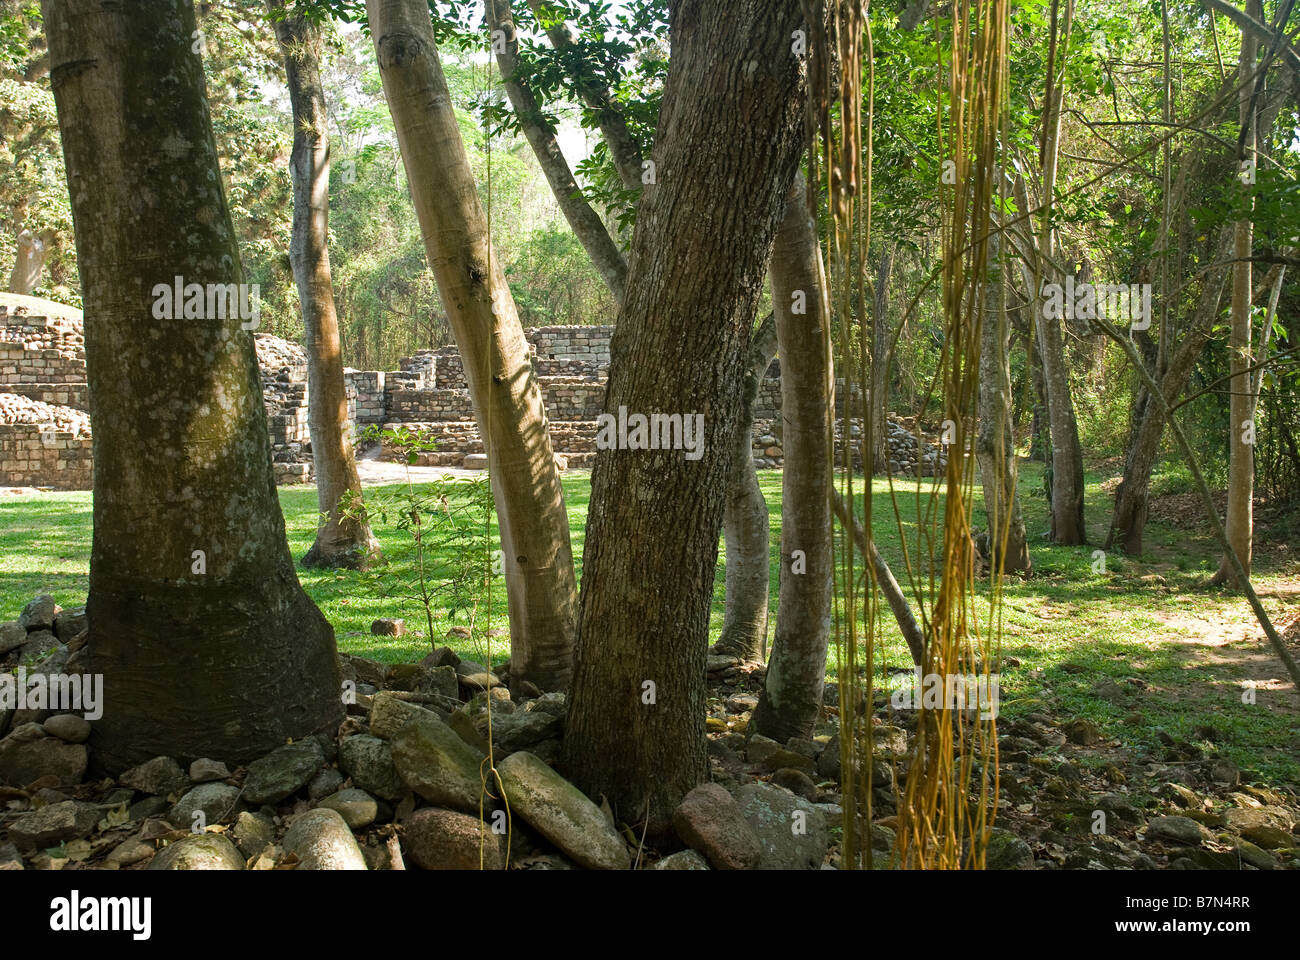 Honduras, Copan, Maya Ruins of Copan, a UNESCO World Heritage Site. - Stock Image